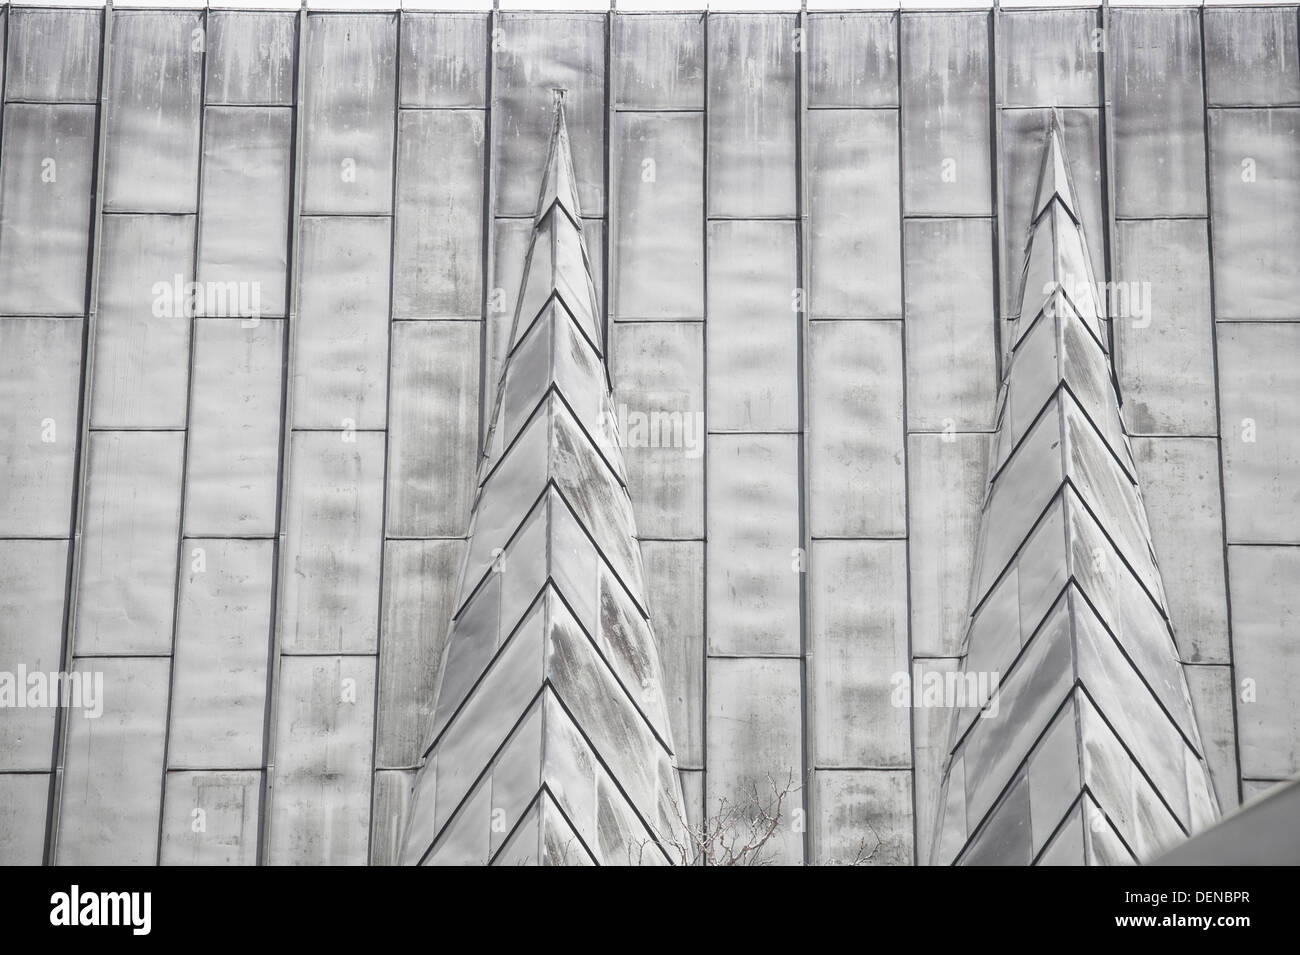 closeup of lead tiles on church roof Auckland New Zealand Stock